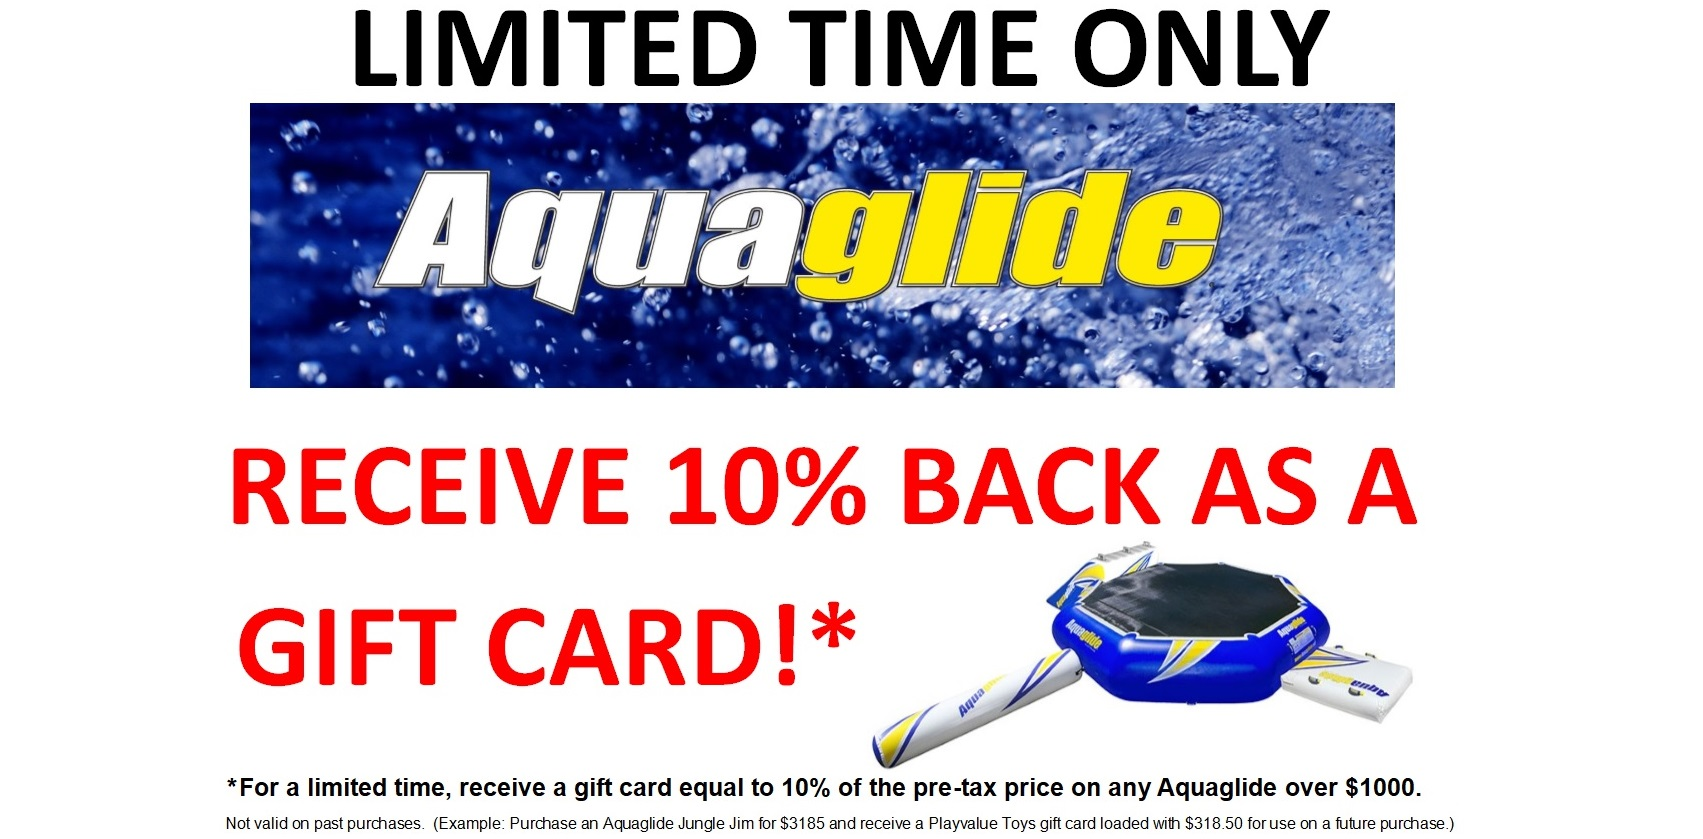 One of Canada's Best Selections of Aquaglide Sold Here